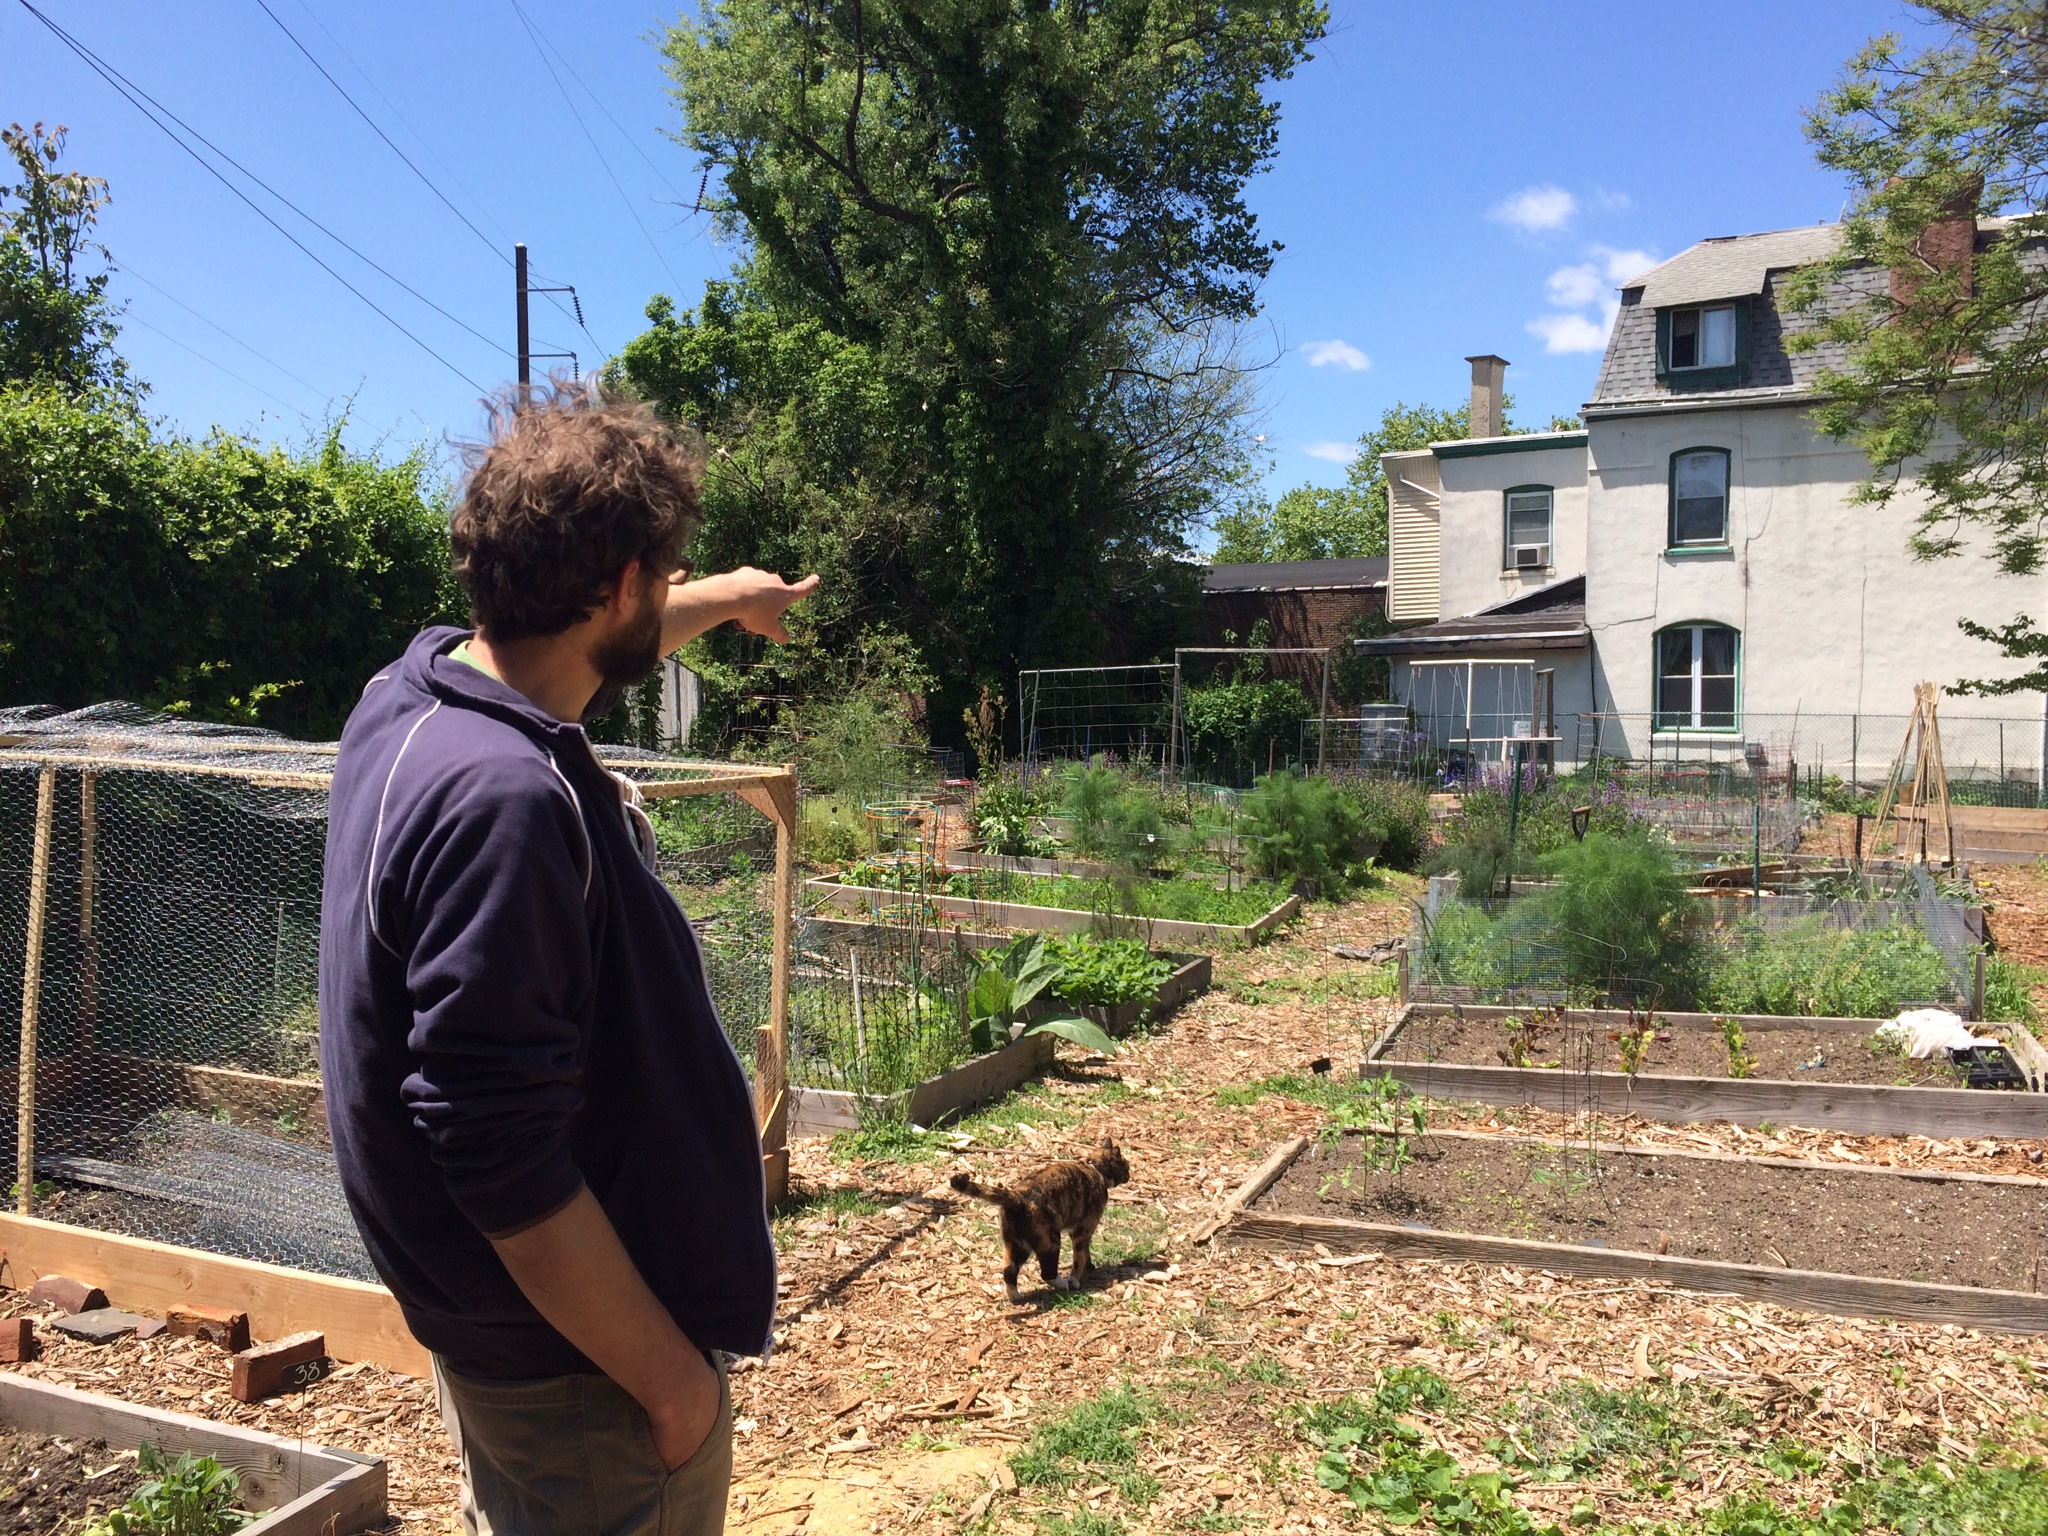 Gardener Phil Forsyth in St. Bernard Community Garden, May 2016 | Max Marin